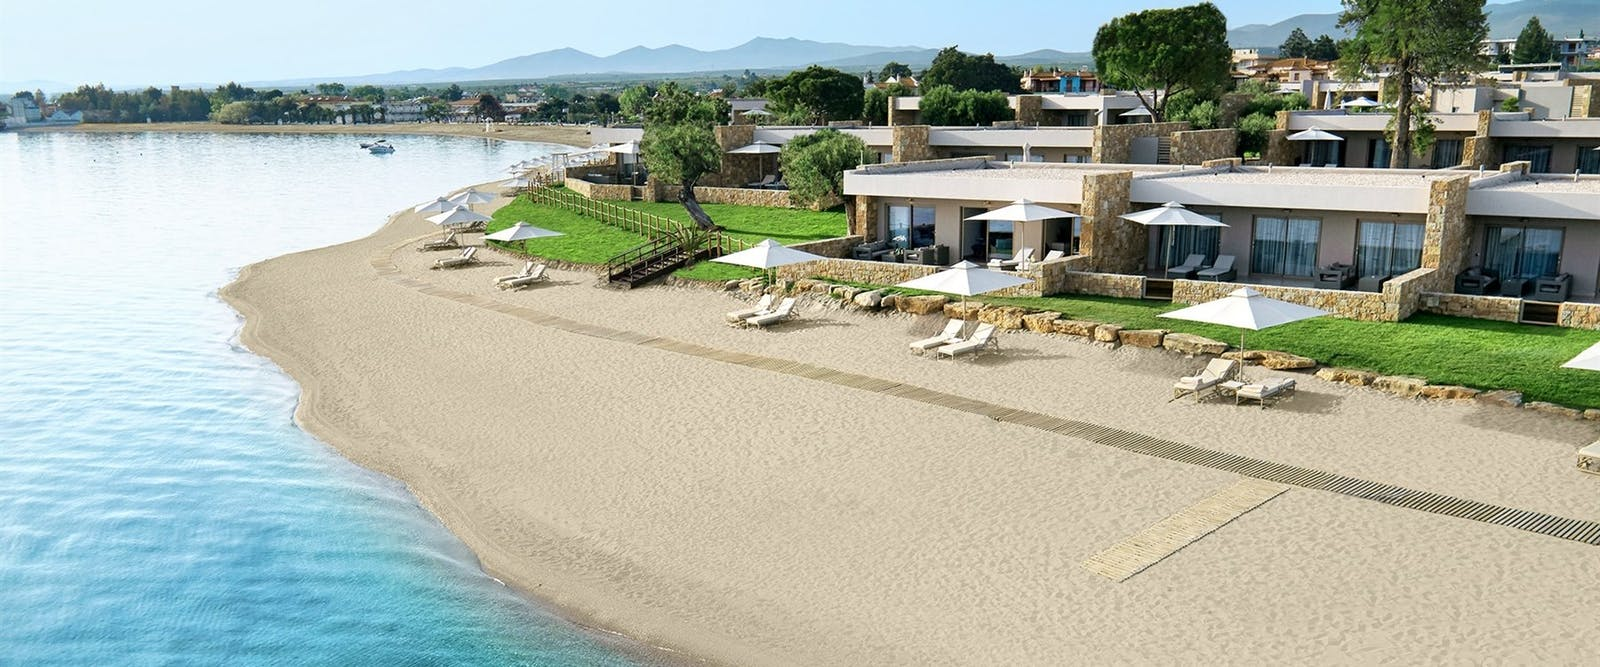 Deluxe Two Bedroom Suite, Beachfront at Ikos Olivia, Halkidiki, Greece